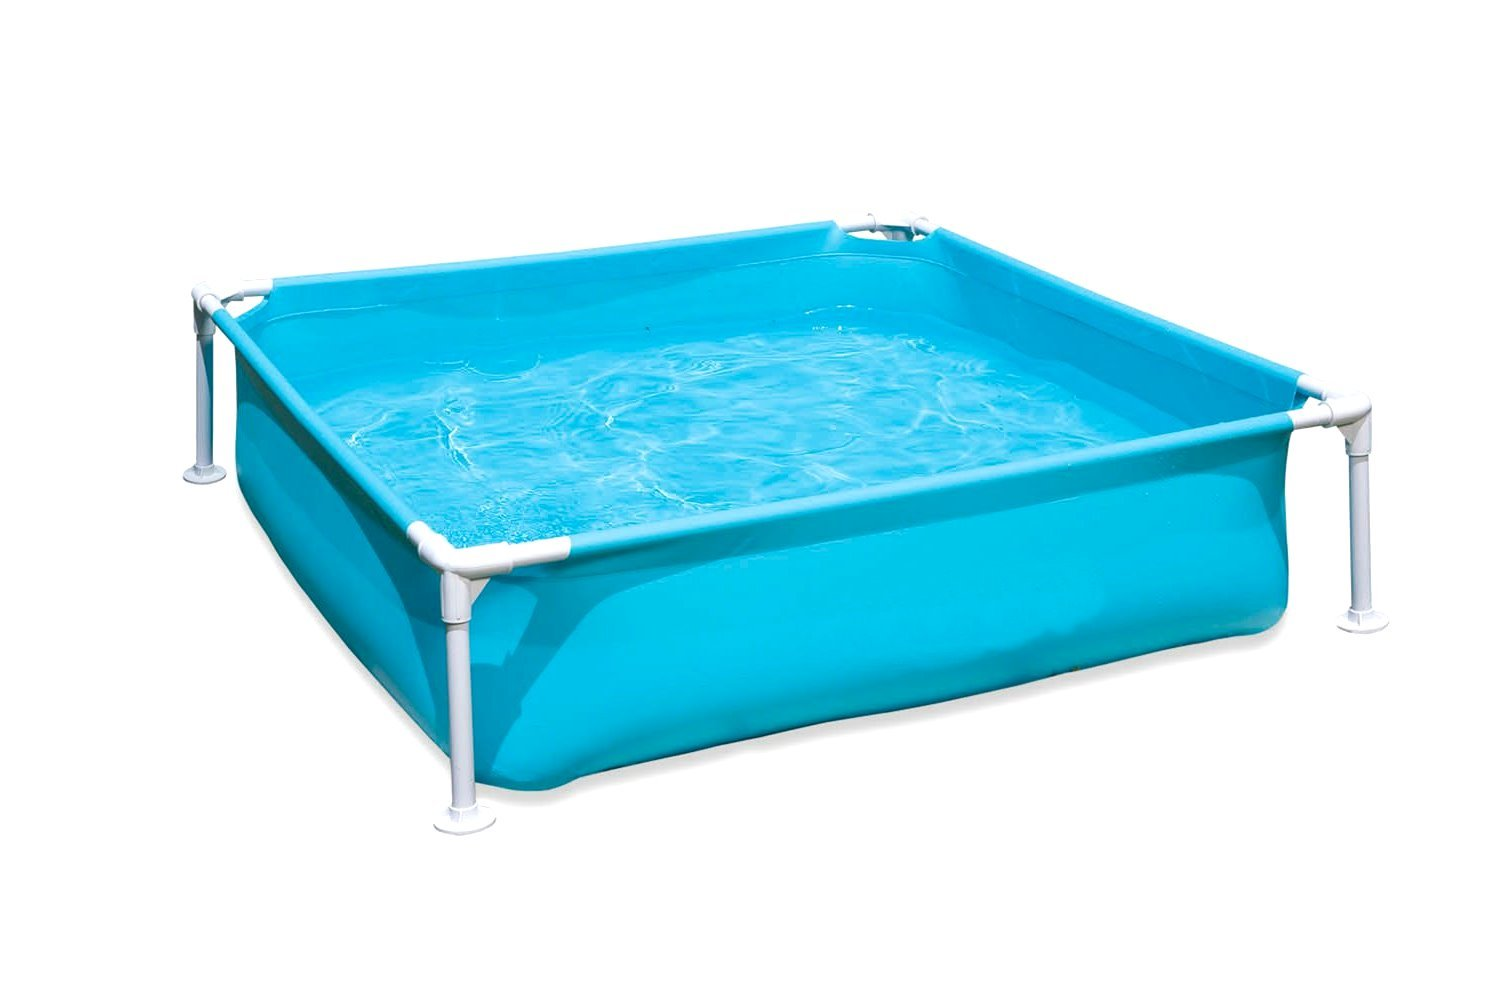 Kids-Frame-Pool. Small Kiddie Above Ground Swimming Fill 'N Fun Pool Is Great For Children & Toddlers To Have Outdoor Water Fun W/ Toys & Floats. This Baby Pool Light & Portable. Heavy-Duty (Blue)